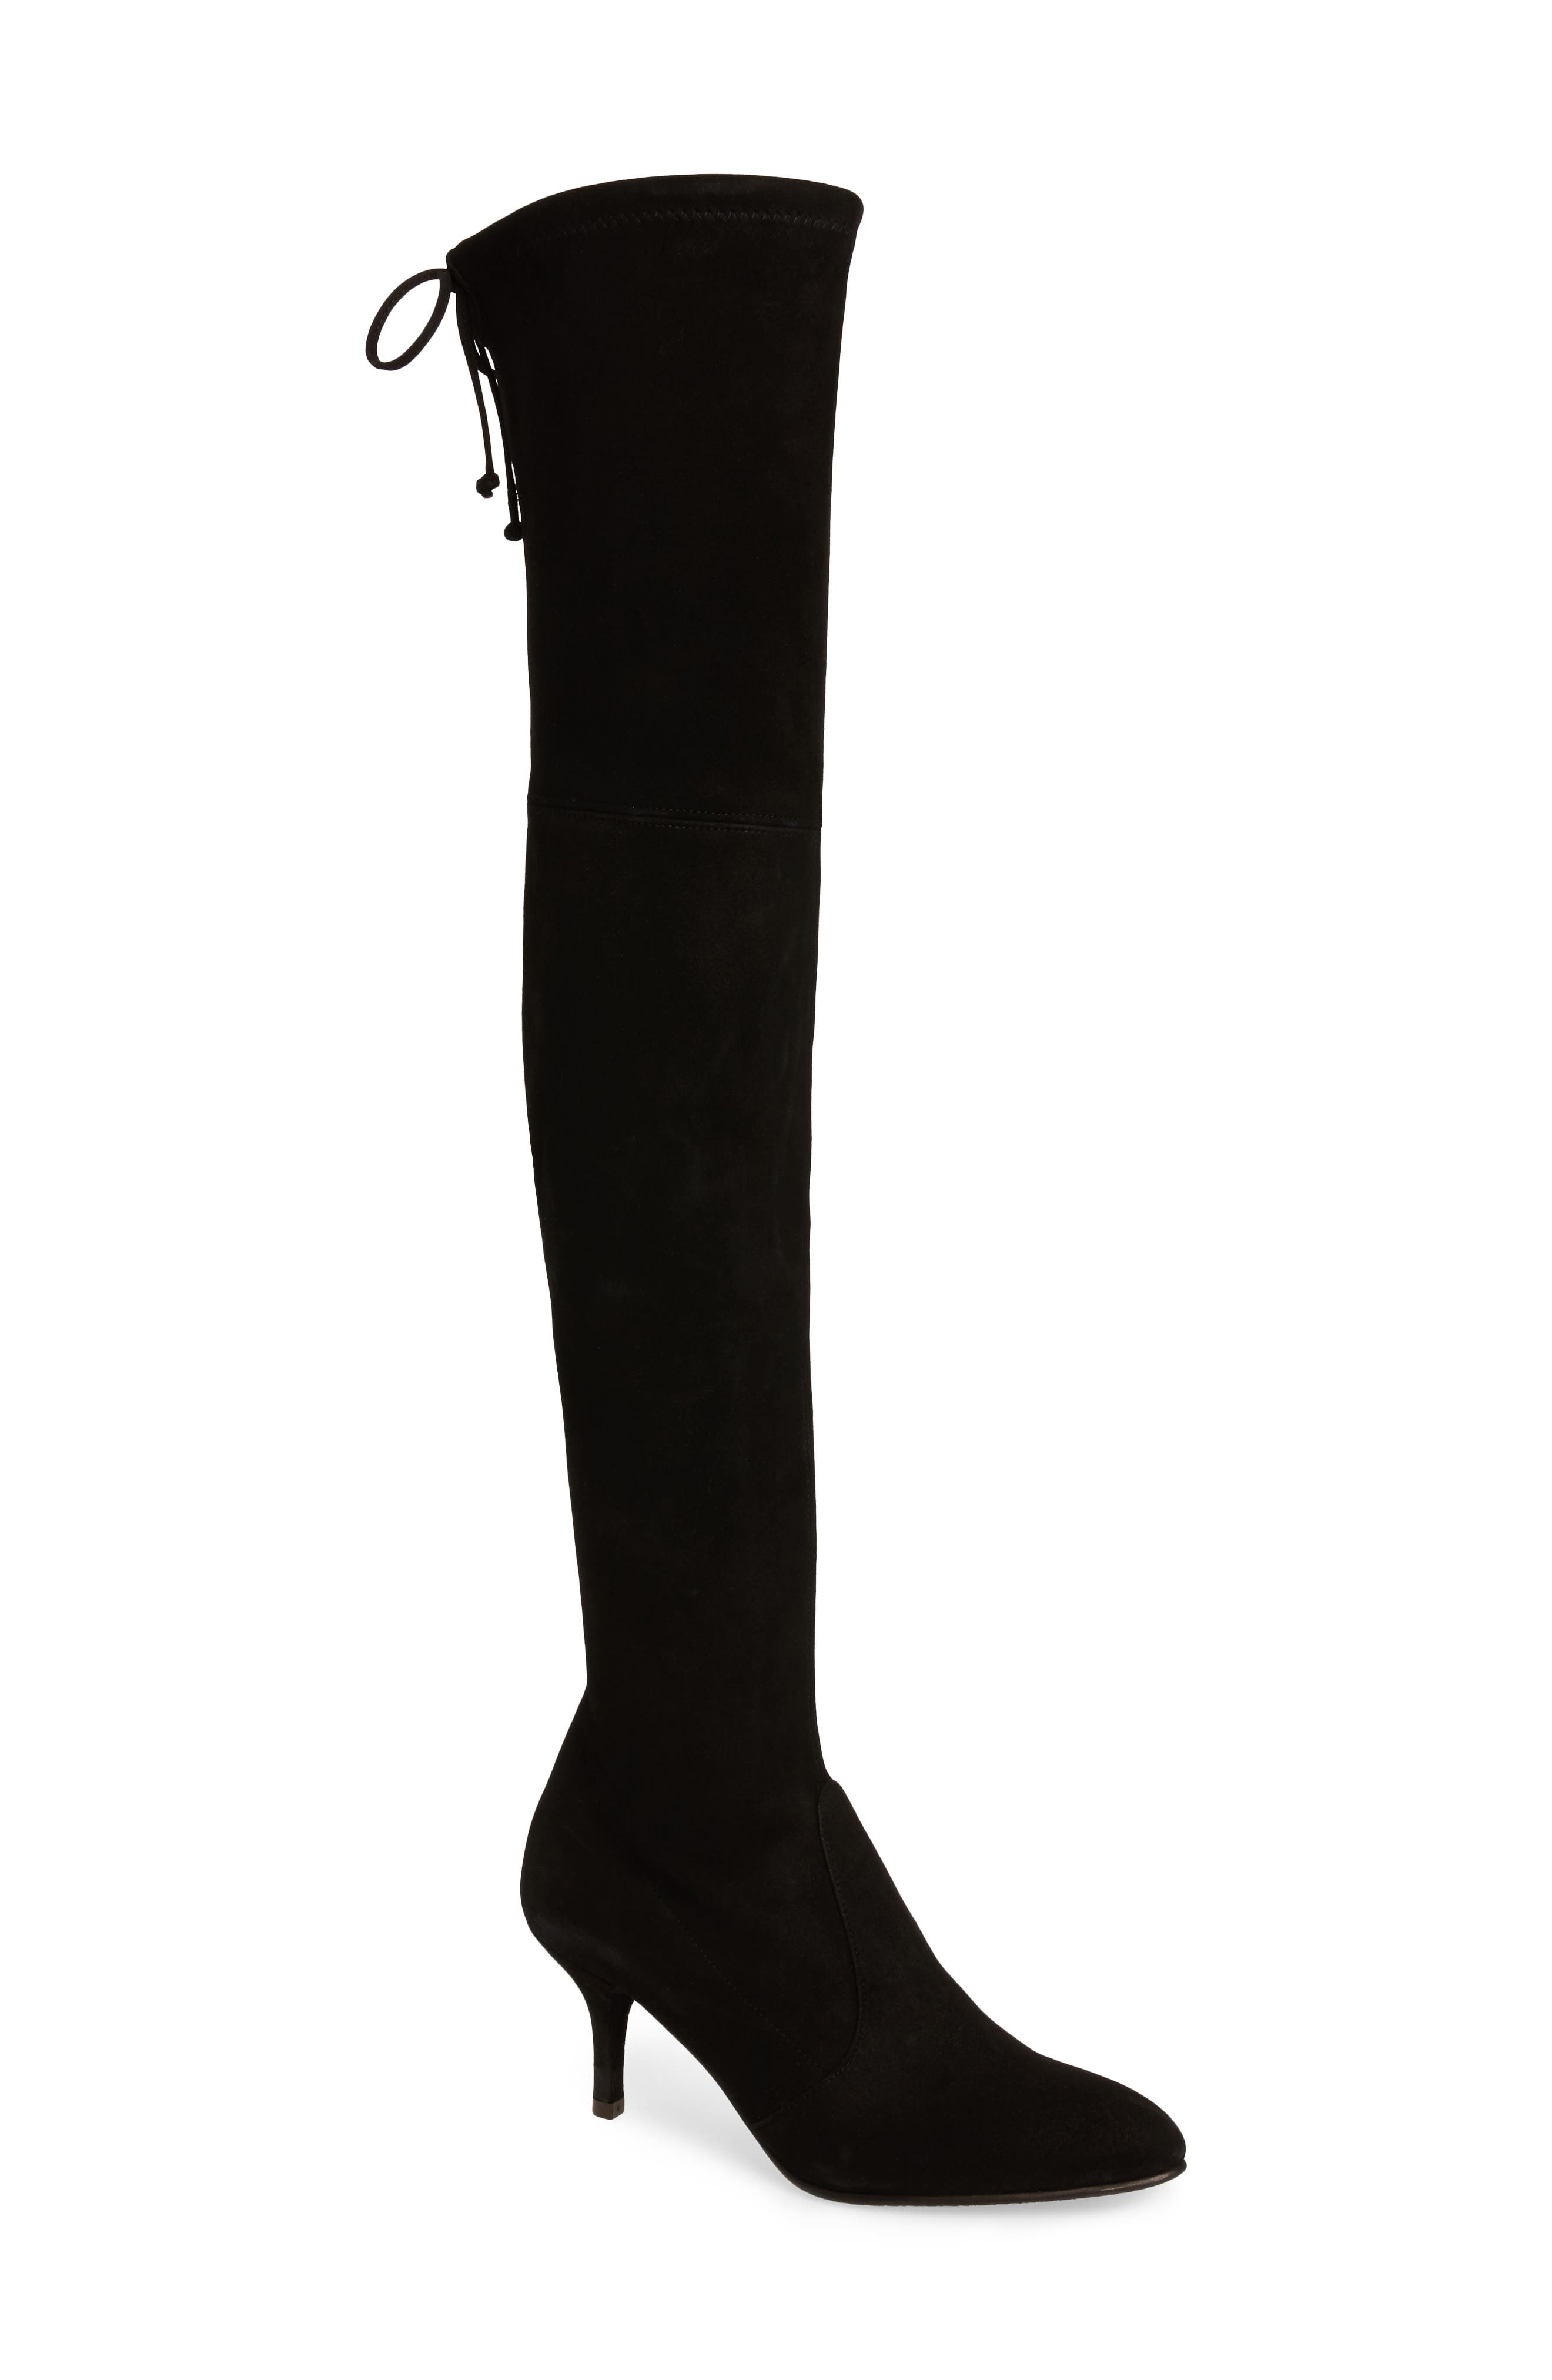 Alternate Image 1 Selected - Stuart Weitzman Tiemodel Over the Knee Stretch Boot (Women)